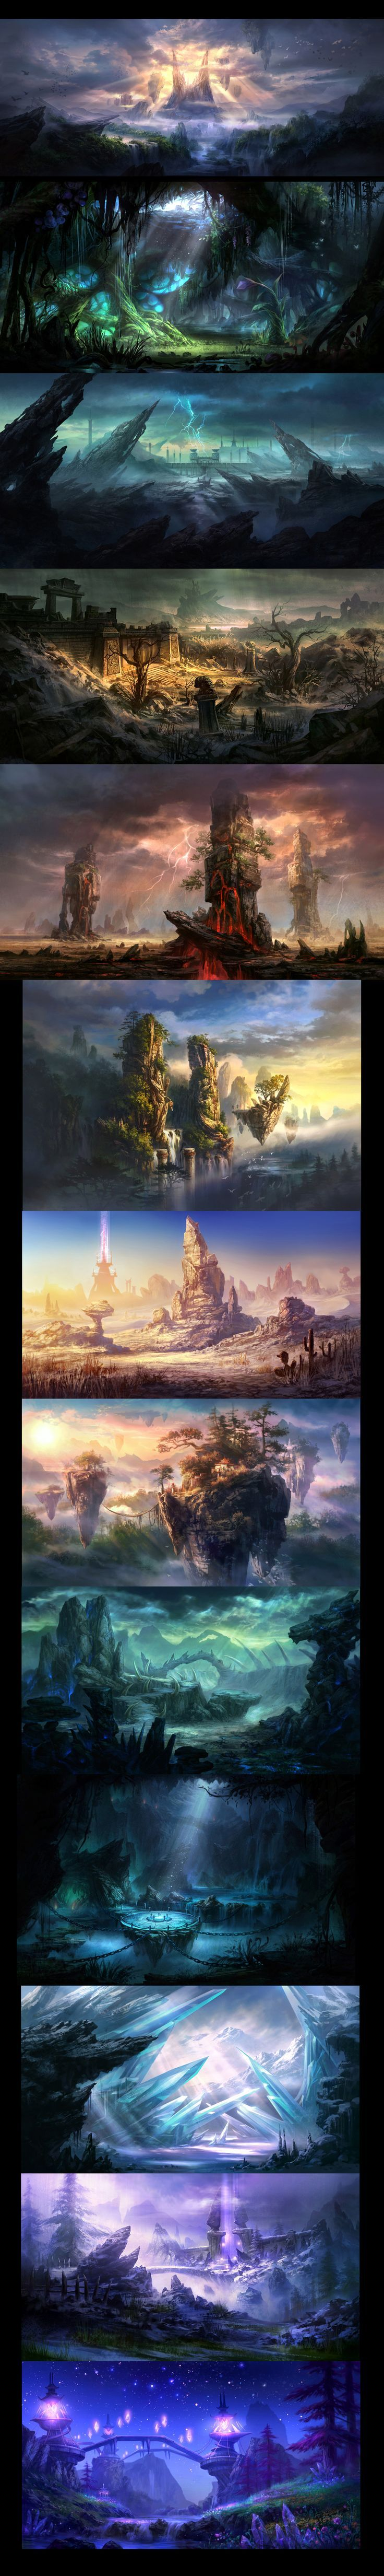 Some scenes fighting Ares original paintings and objects design, painting scenes of the original painting sister, hope more exchanges! - 2D original works - (original painting, illustration, colleagues merged) - original painting human CG Artists Mehr